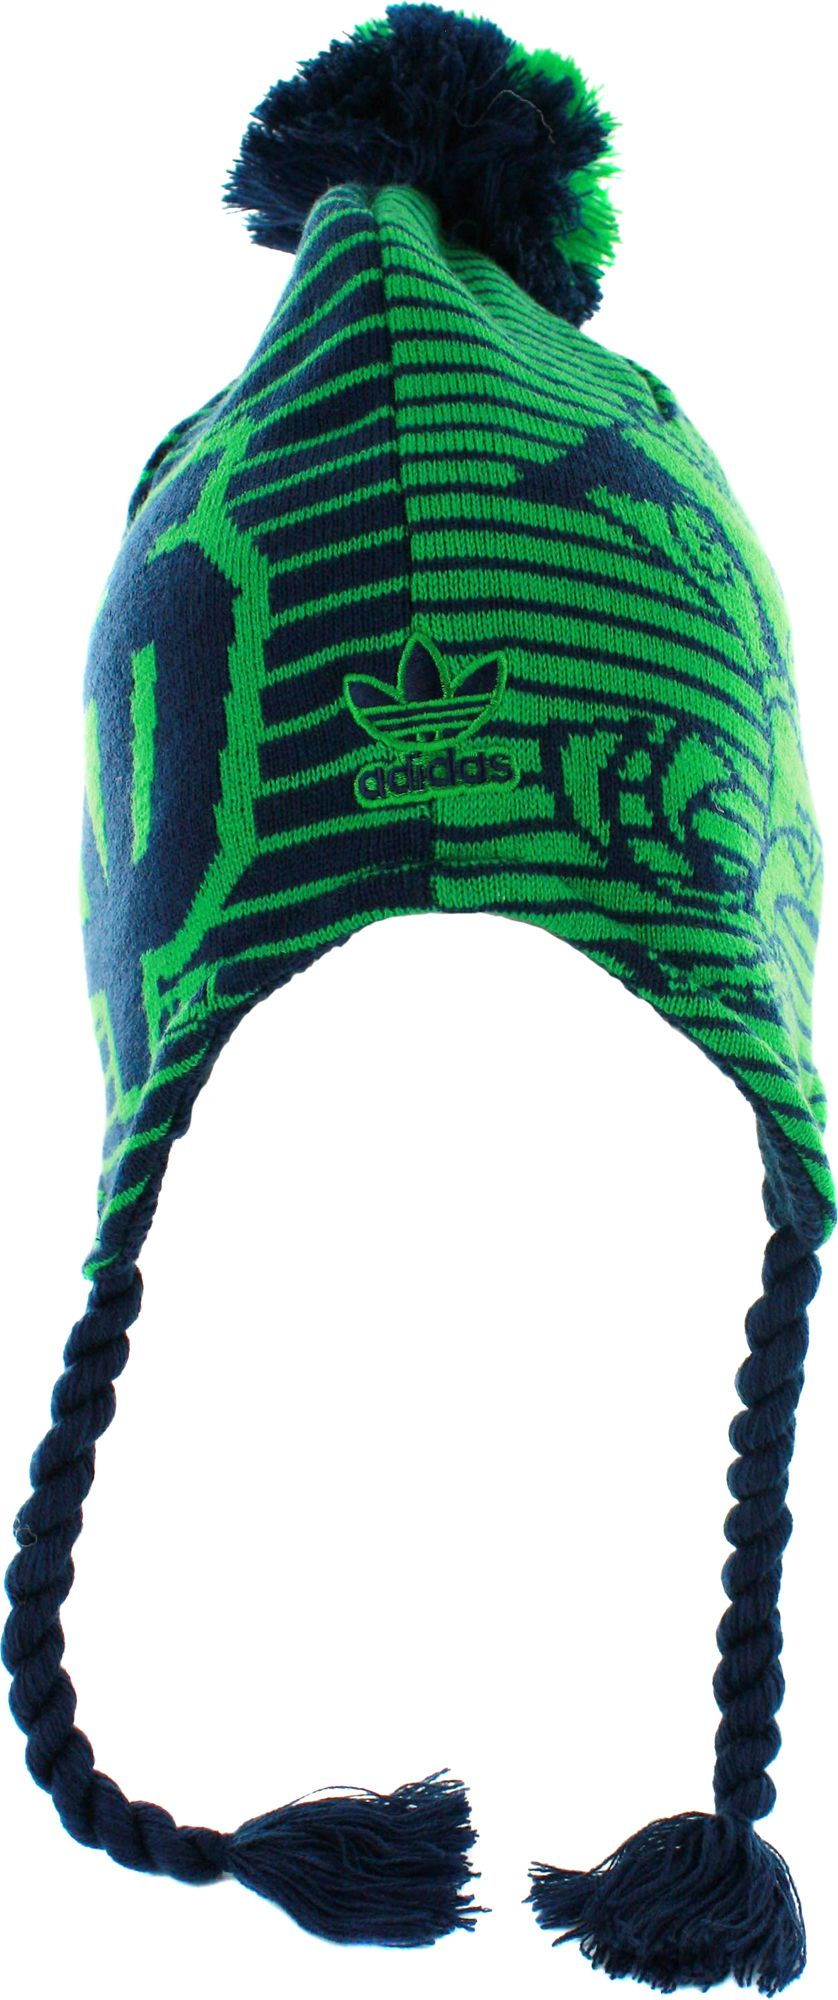 Notre Dame Fighting Irish Tassel Pom Knit Hat by Sports Licensed Division of The Adidas Group